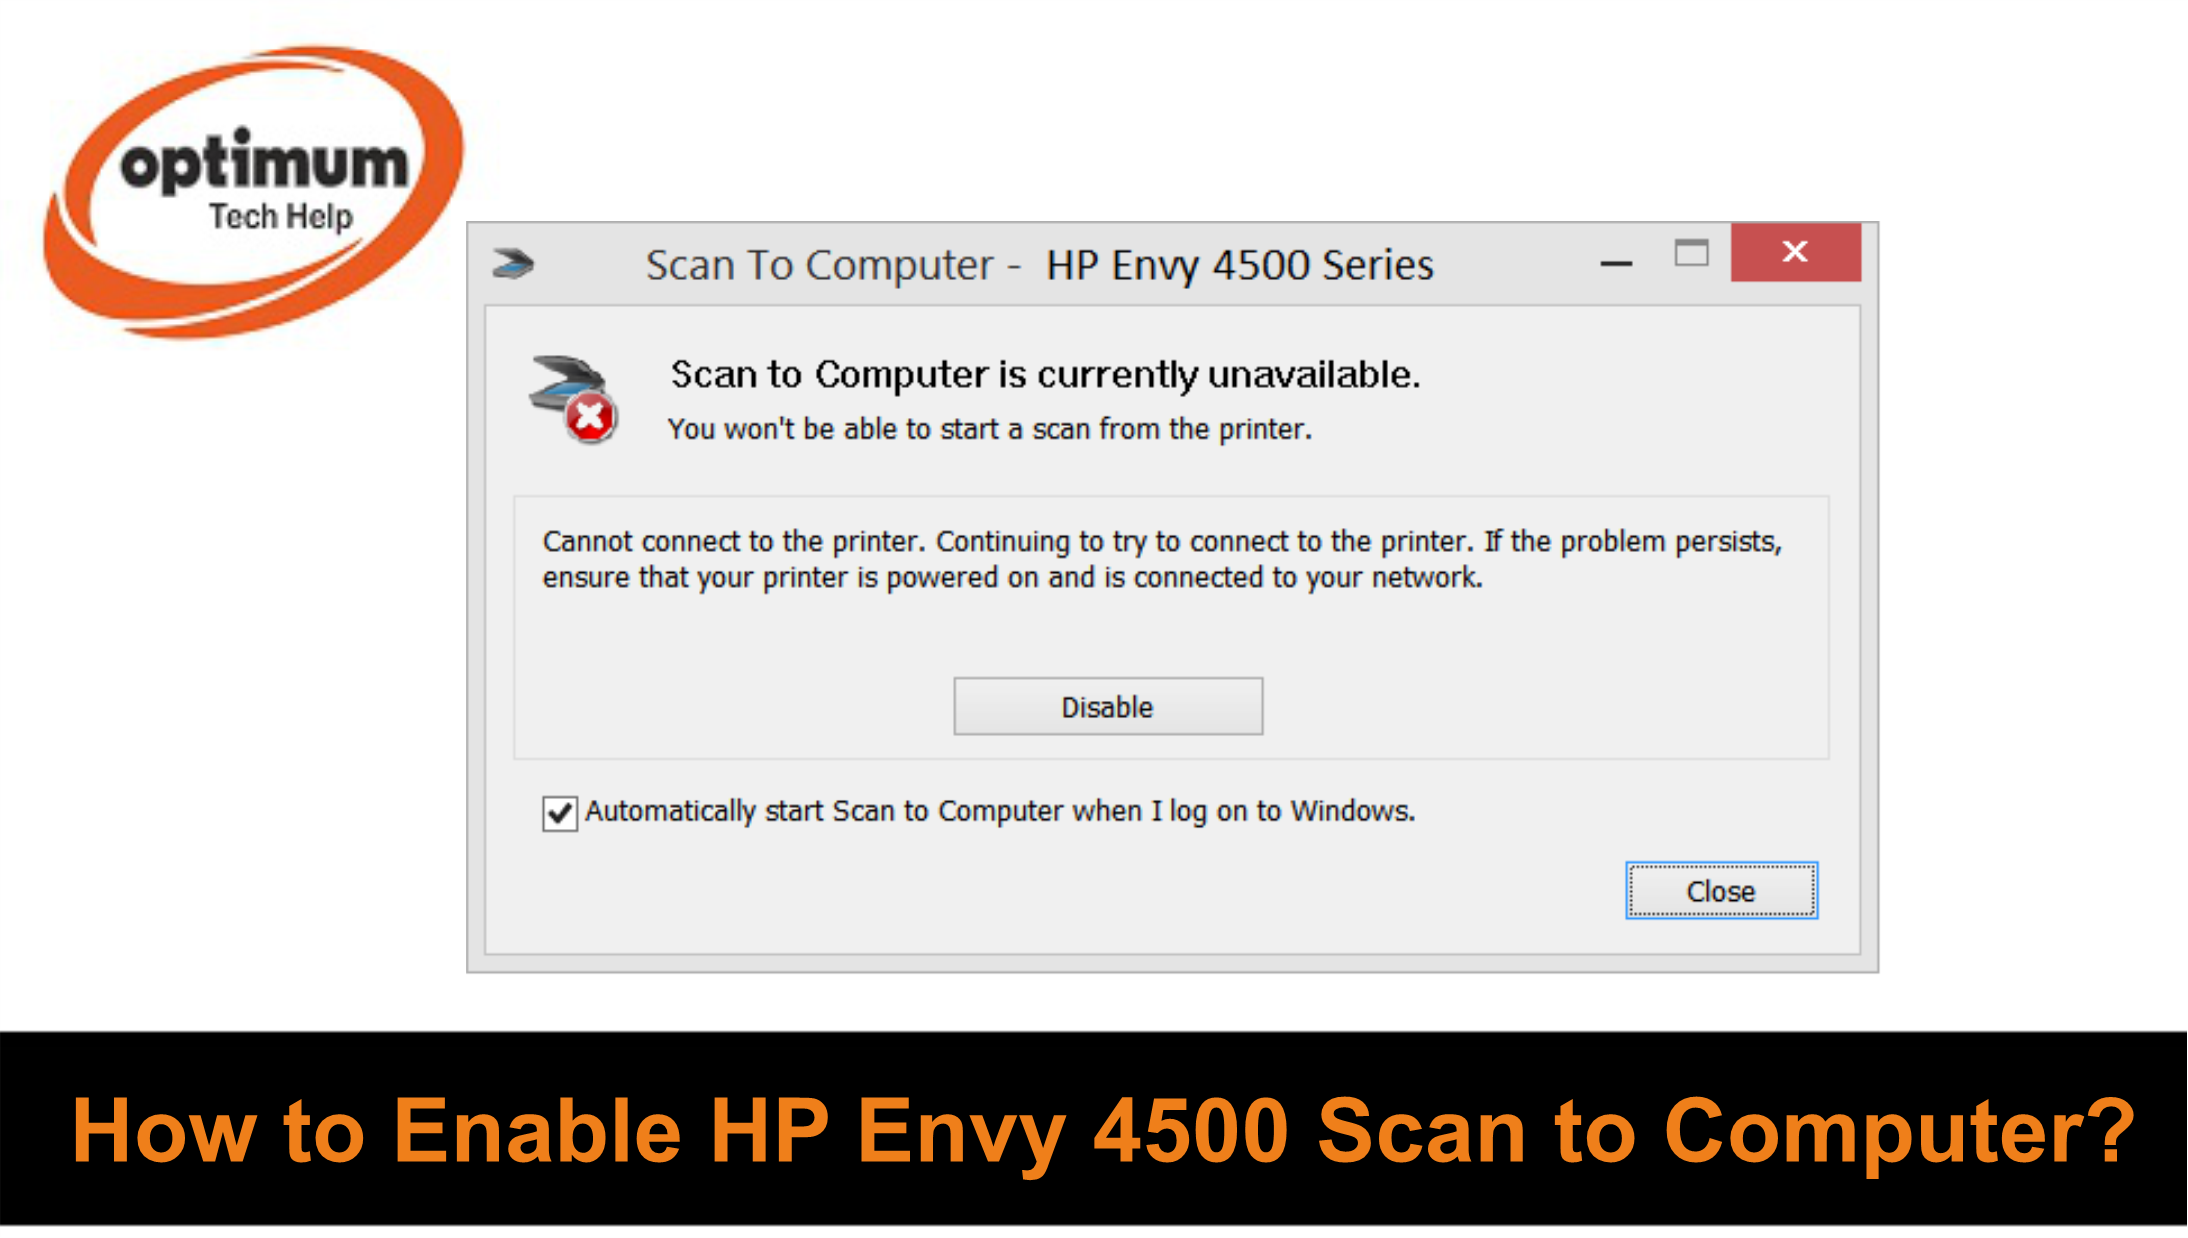 HP Envy 4500 Scan to computer